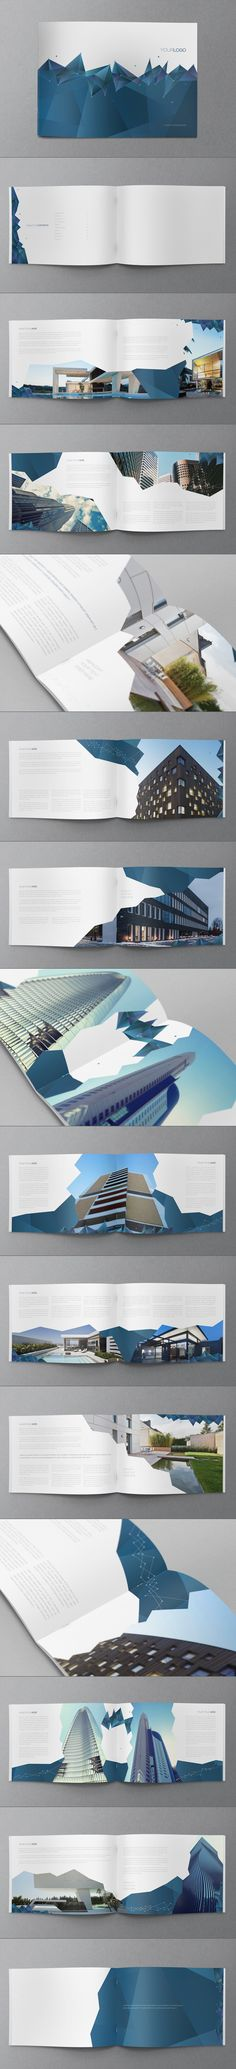 Science Brochure Design by Abra Design, via Behance